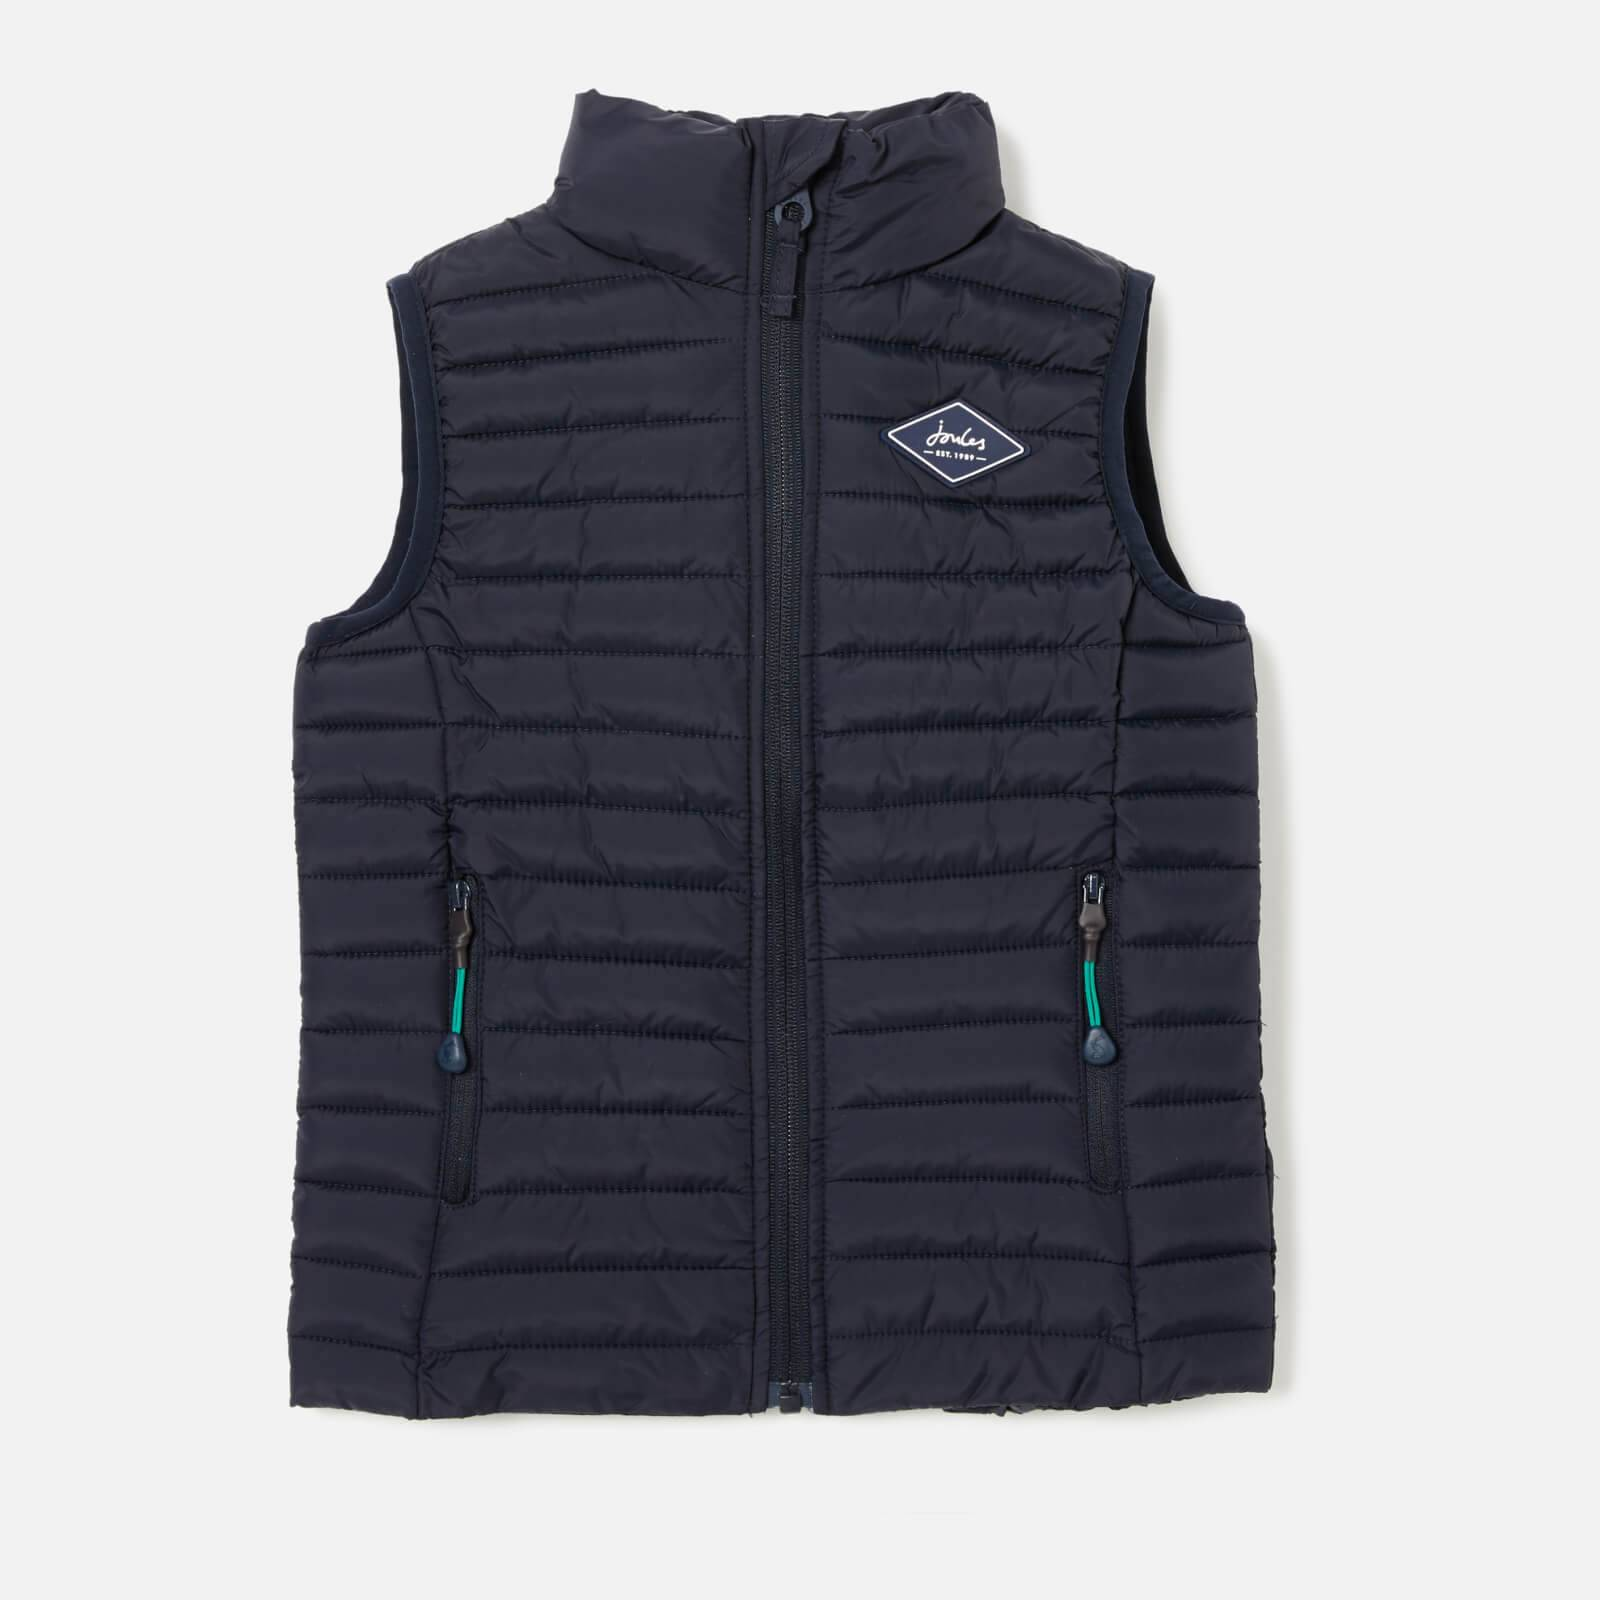 Joules Boys' Crofton Gilet - Marine Navy - 7-8 Years - Blue